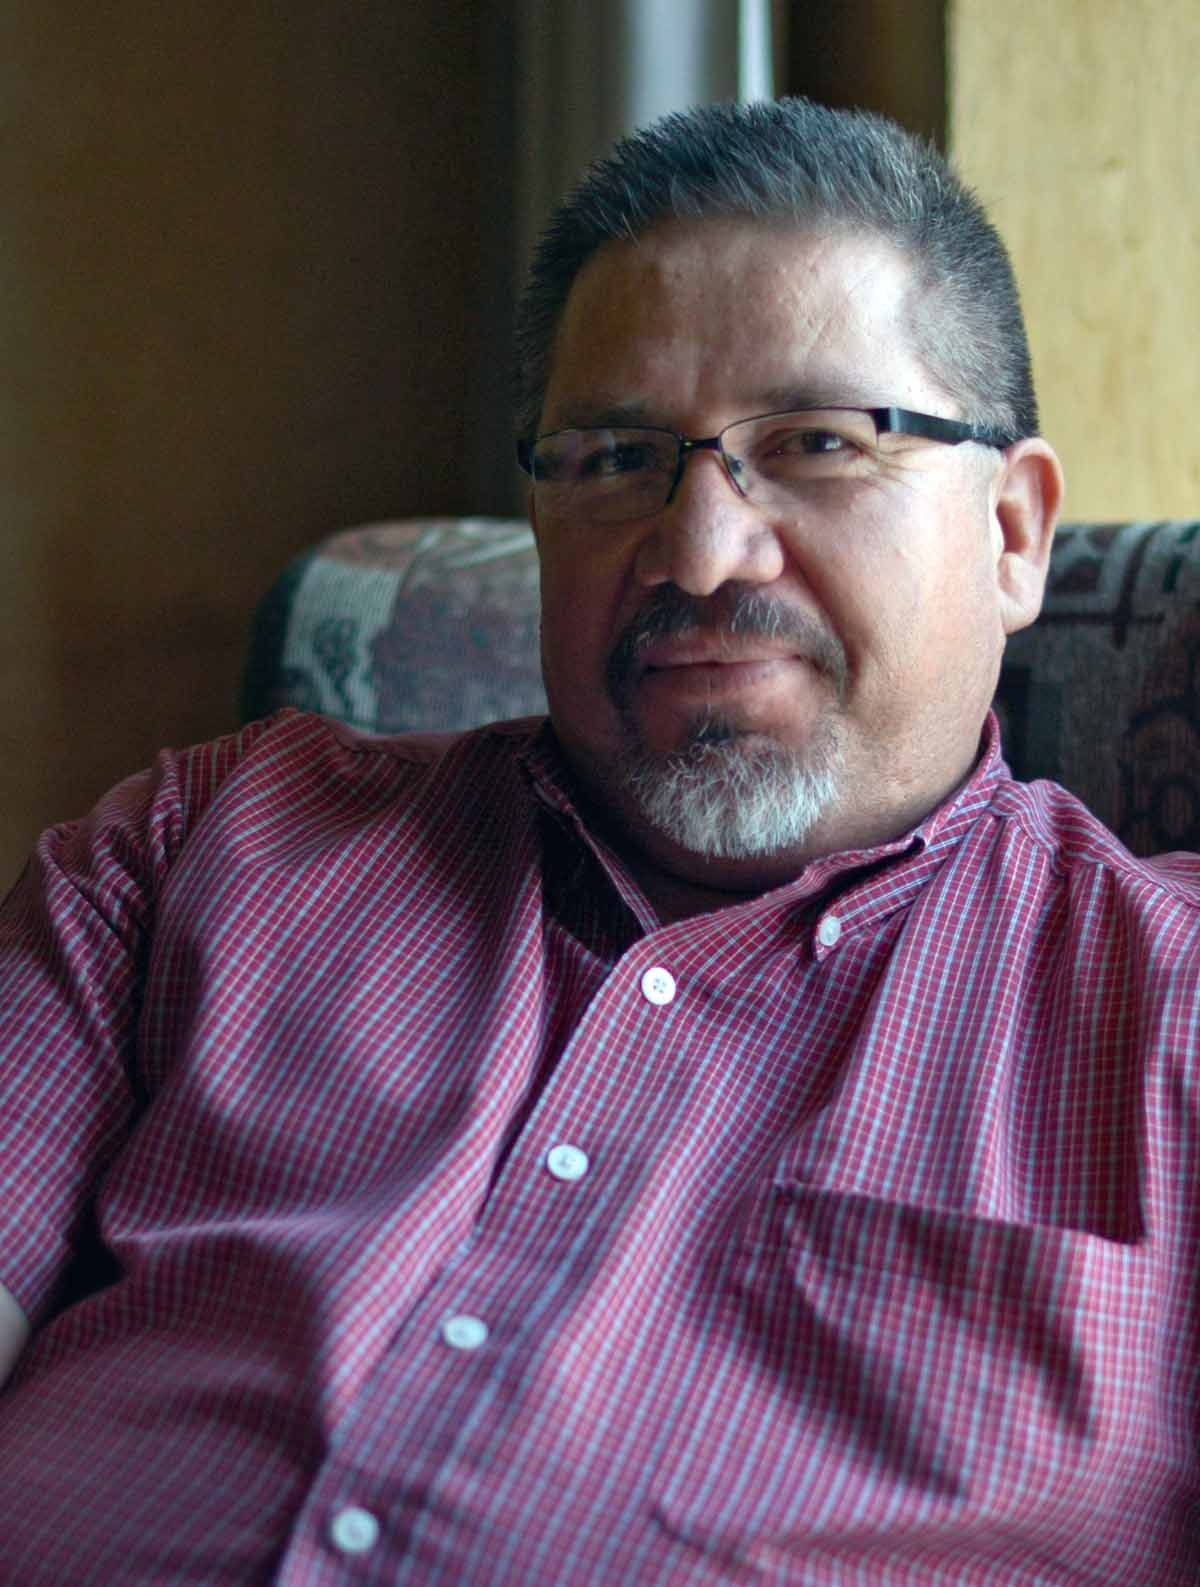 Photo of Mexican award-winning local journalist and Agence France-Presse contributor Javier Valdez, taken on May 23, 2013.